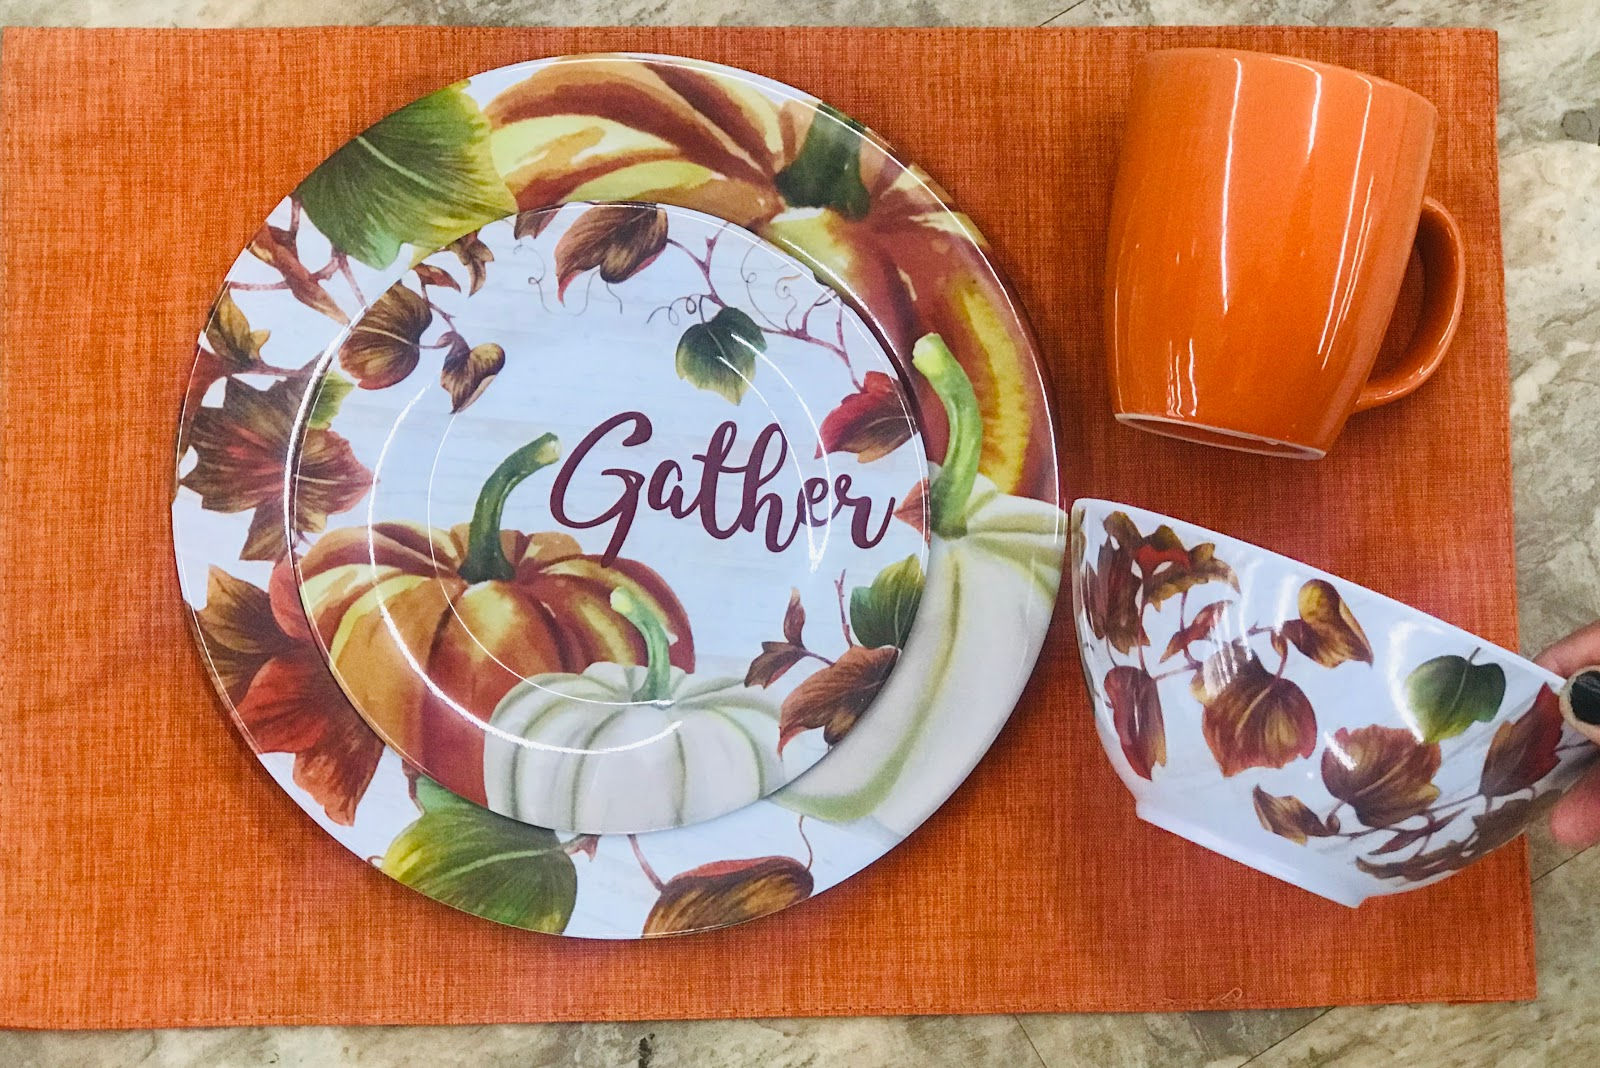 Image:The third style with the orange placemats may be the winner. Since Rico nor myself could choose, we got both the orange and green ones. The orange will be for Fall, and the green will be for Xmas. Yes, I purchased both because the dollar stuff goes fast.